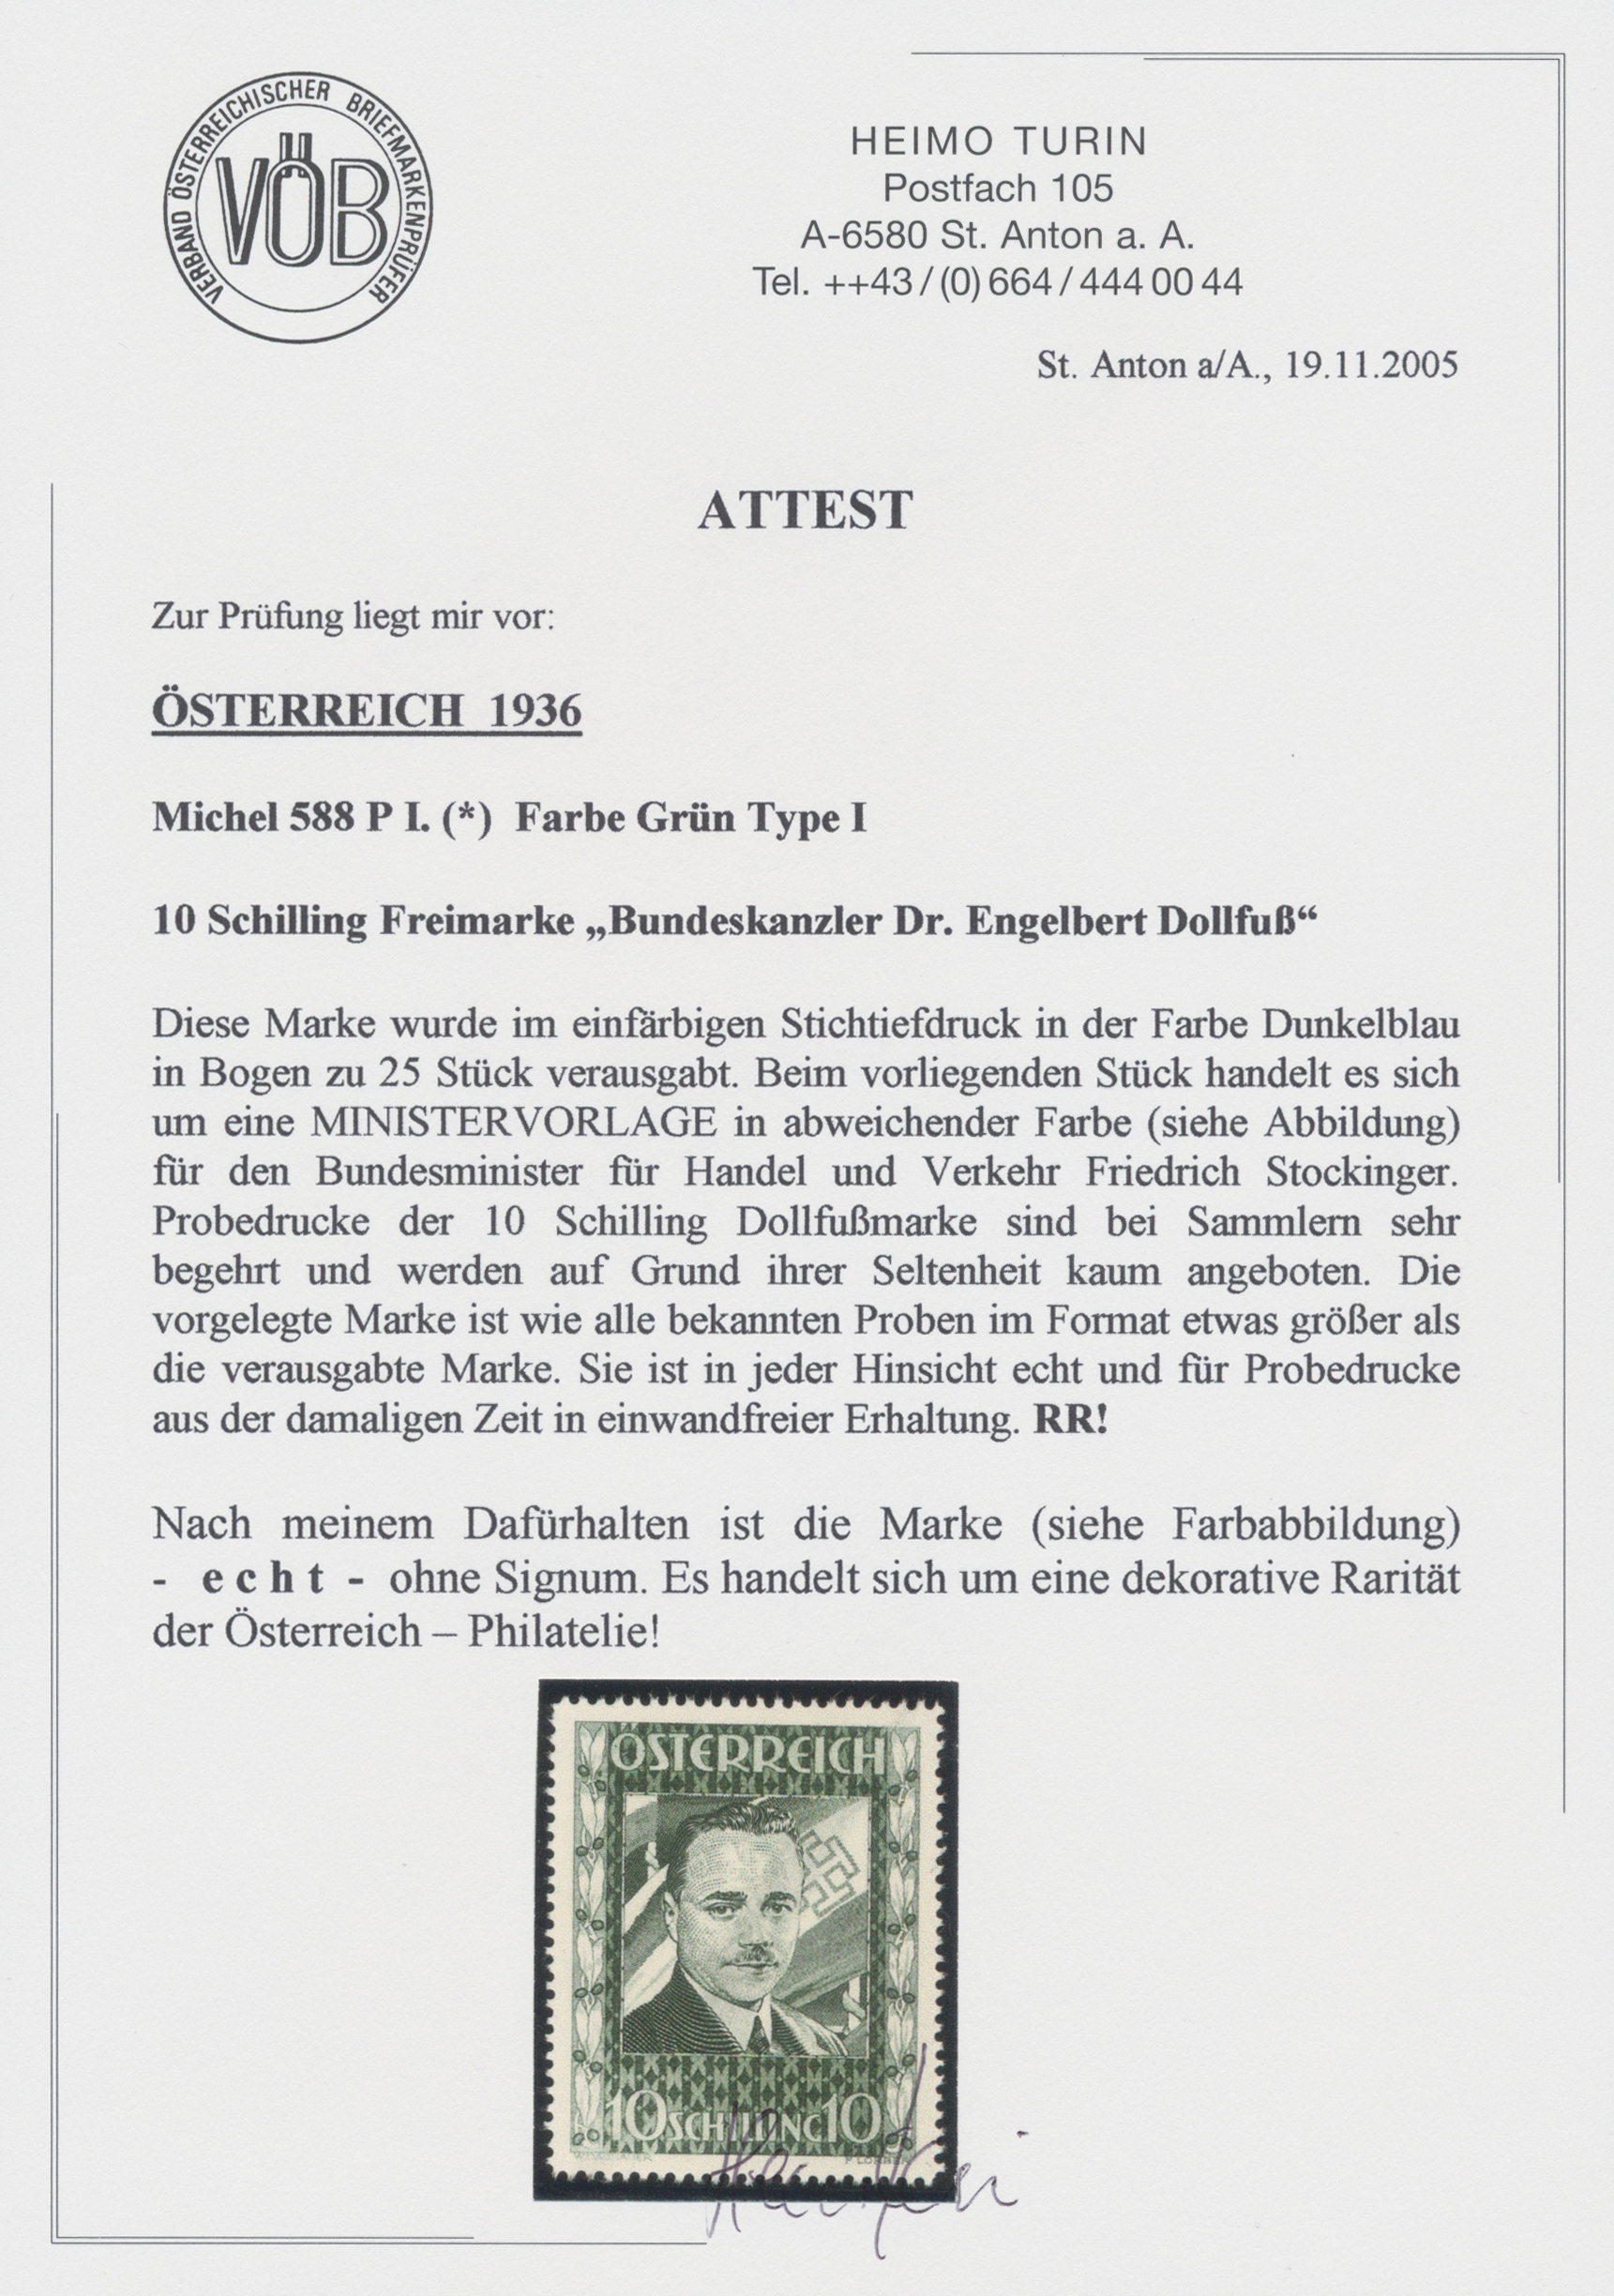 Lot 00017 - österreich  -  Auktionshaus Christoph Gärtner GmbH & Co. KG Intenational Rarities and contains lots from the collection of Peter Zgonc